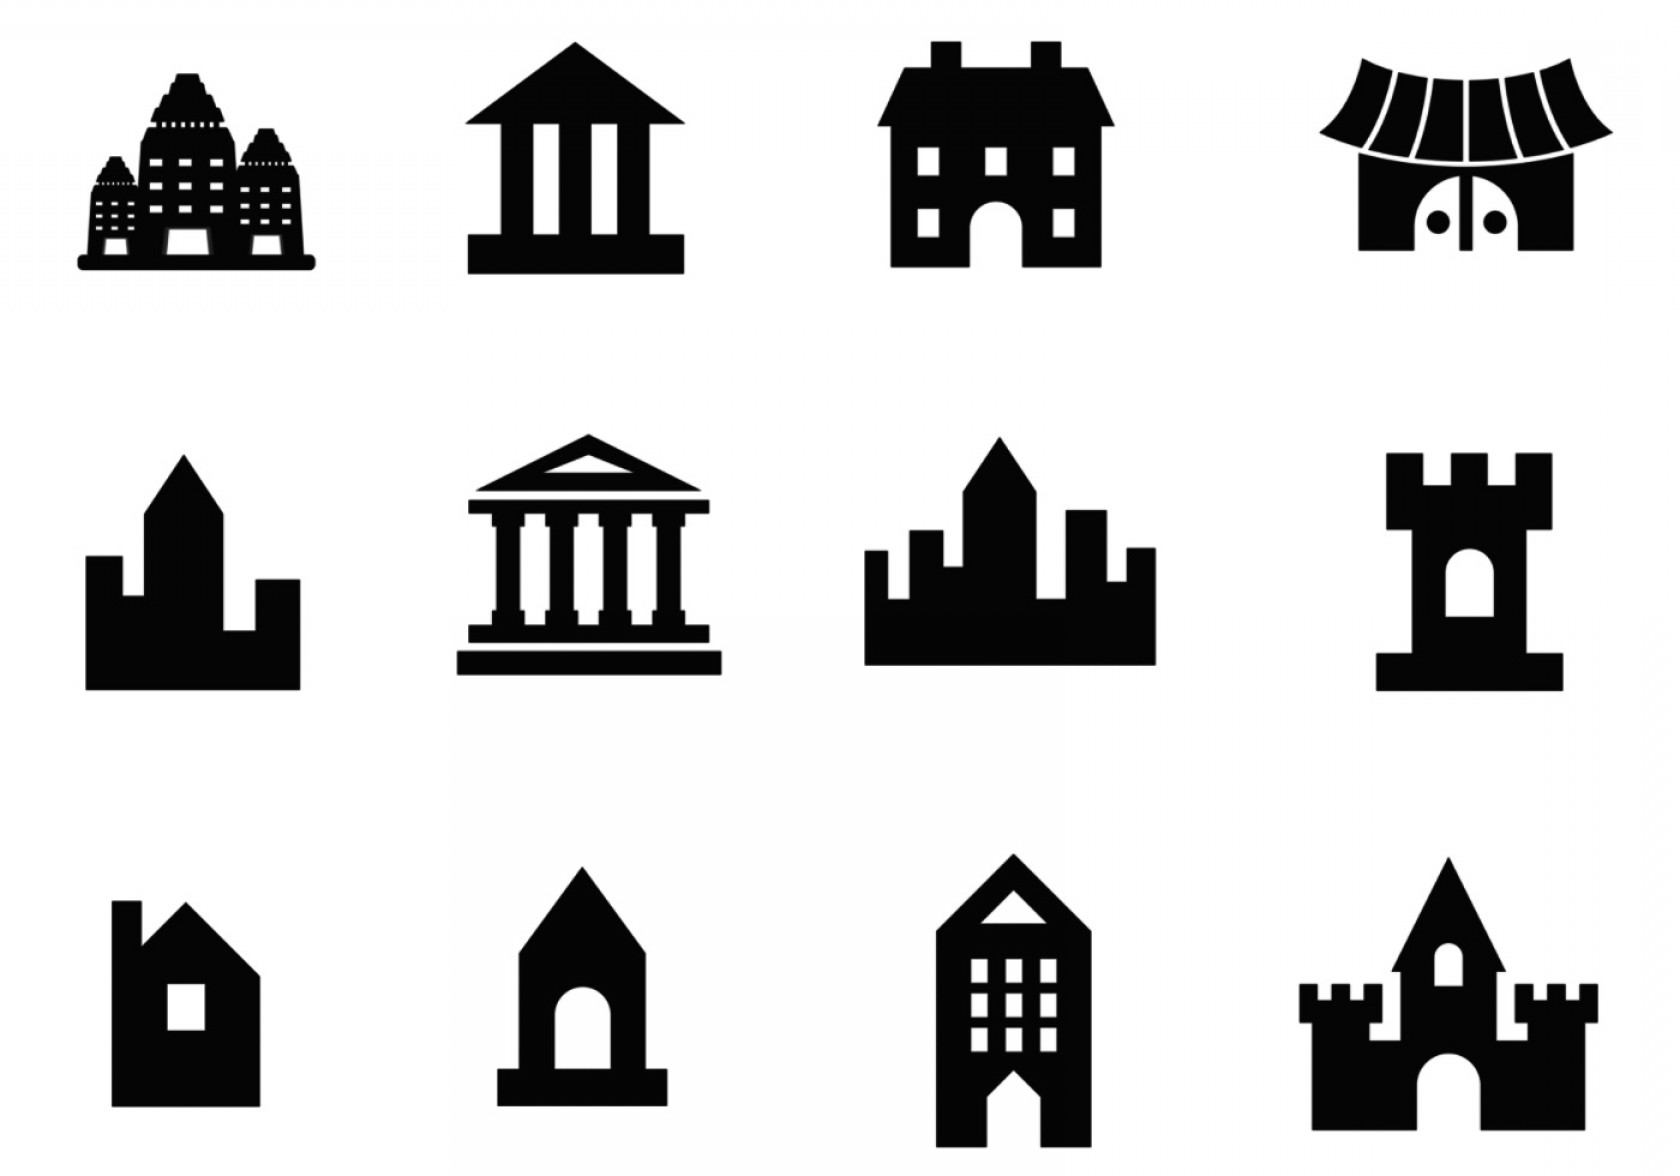 Architecture Vector: Building Vector And Architecture Vector Pack